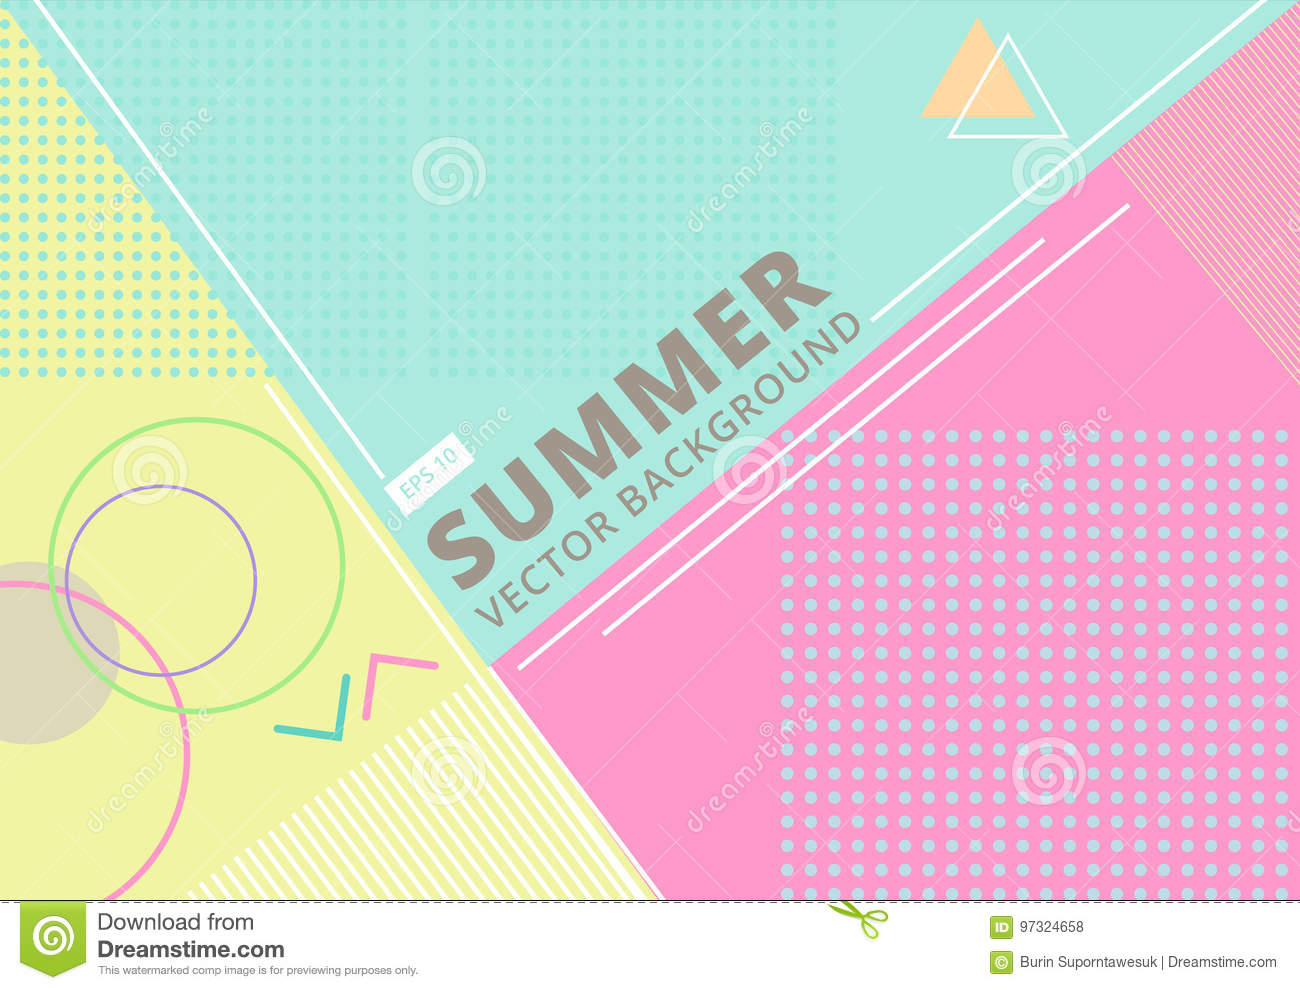 summer with retro style texture pastel color, pattern and geometric elements. Abstract design card perfect for